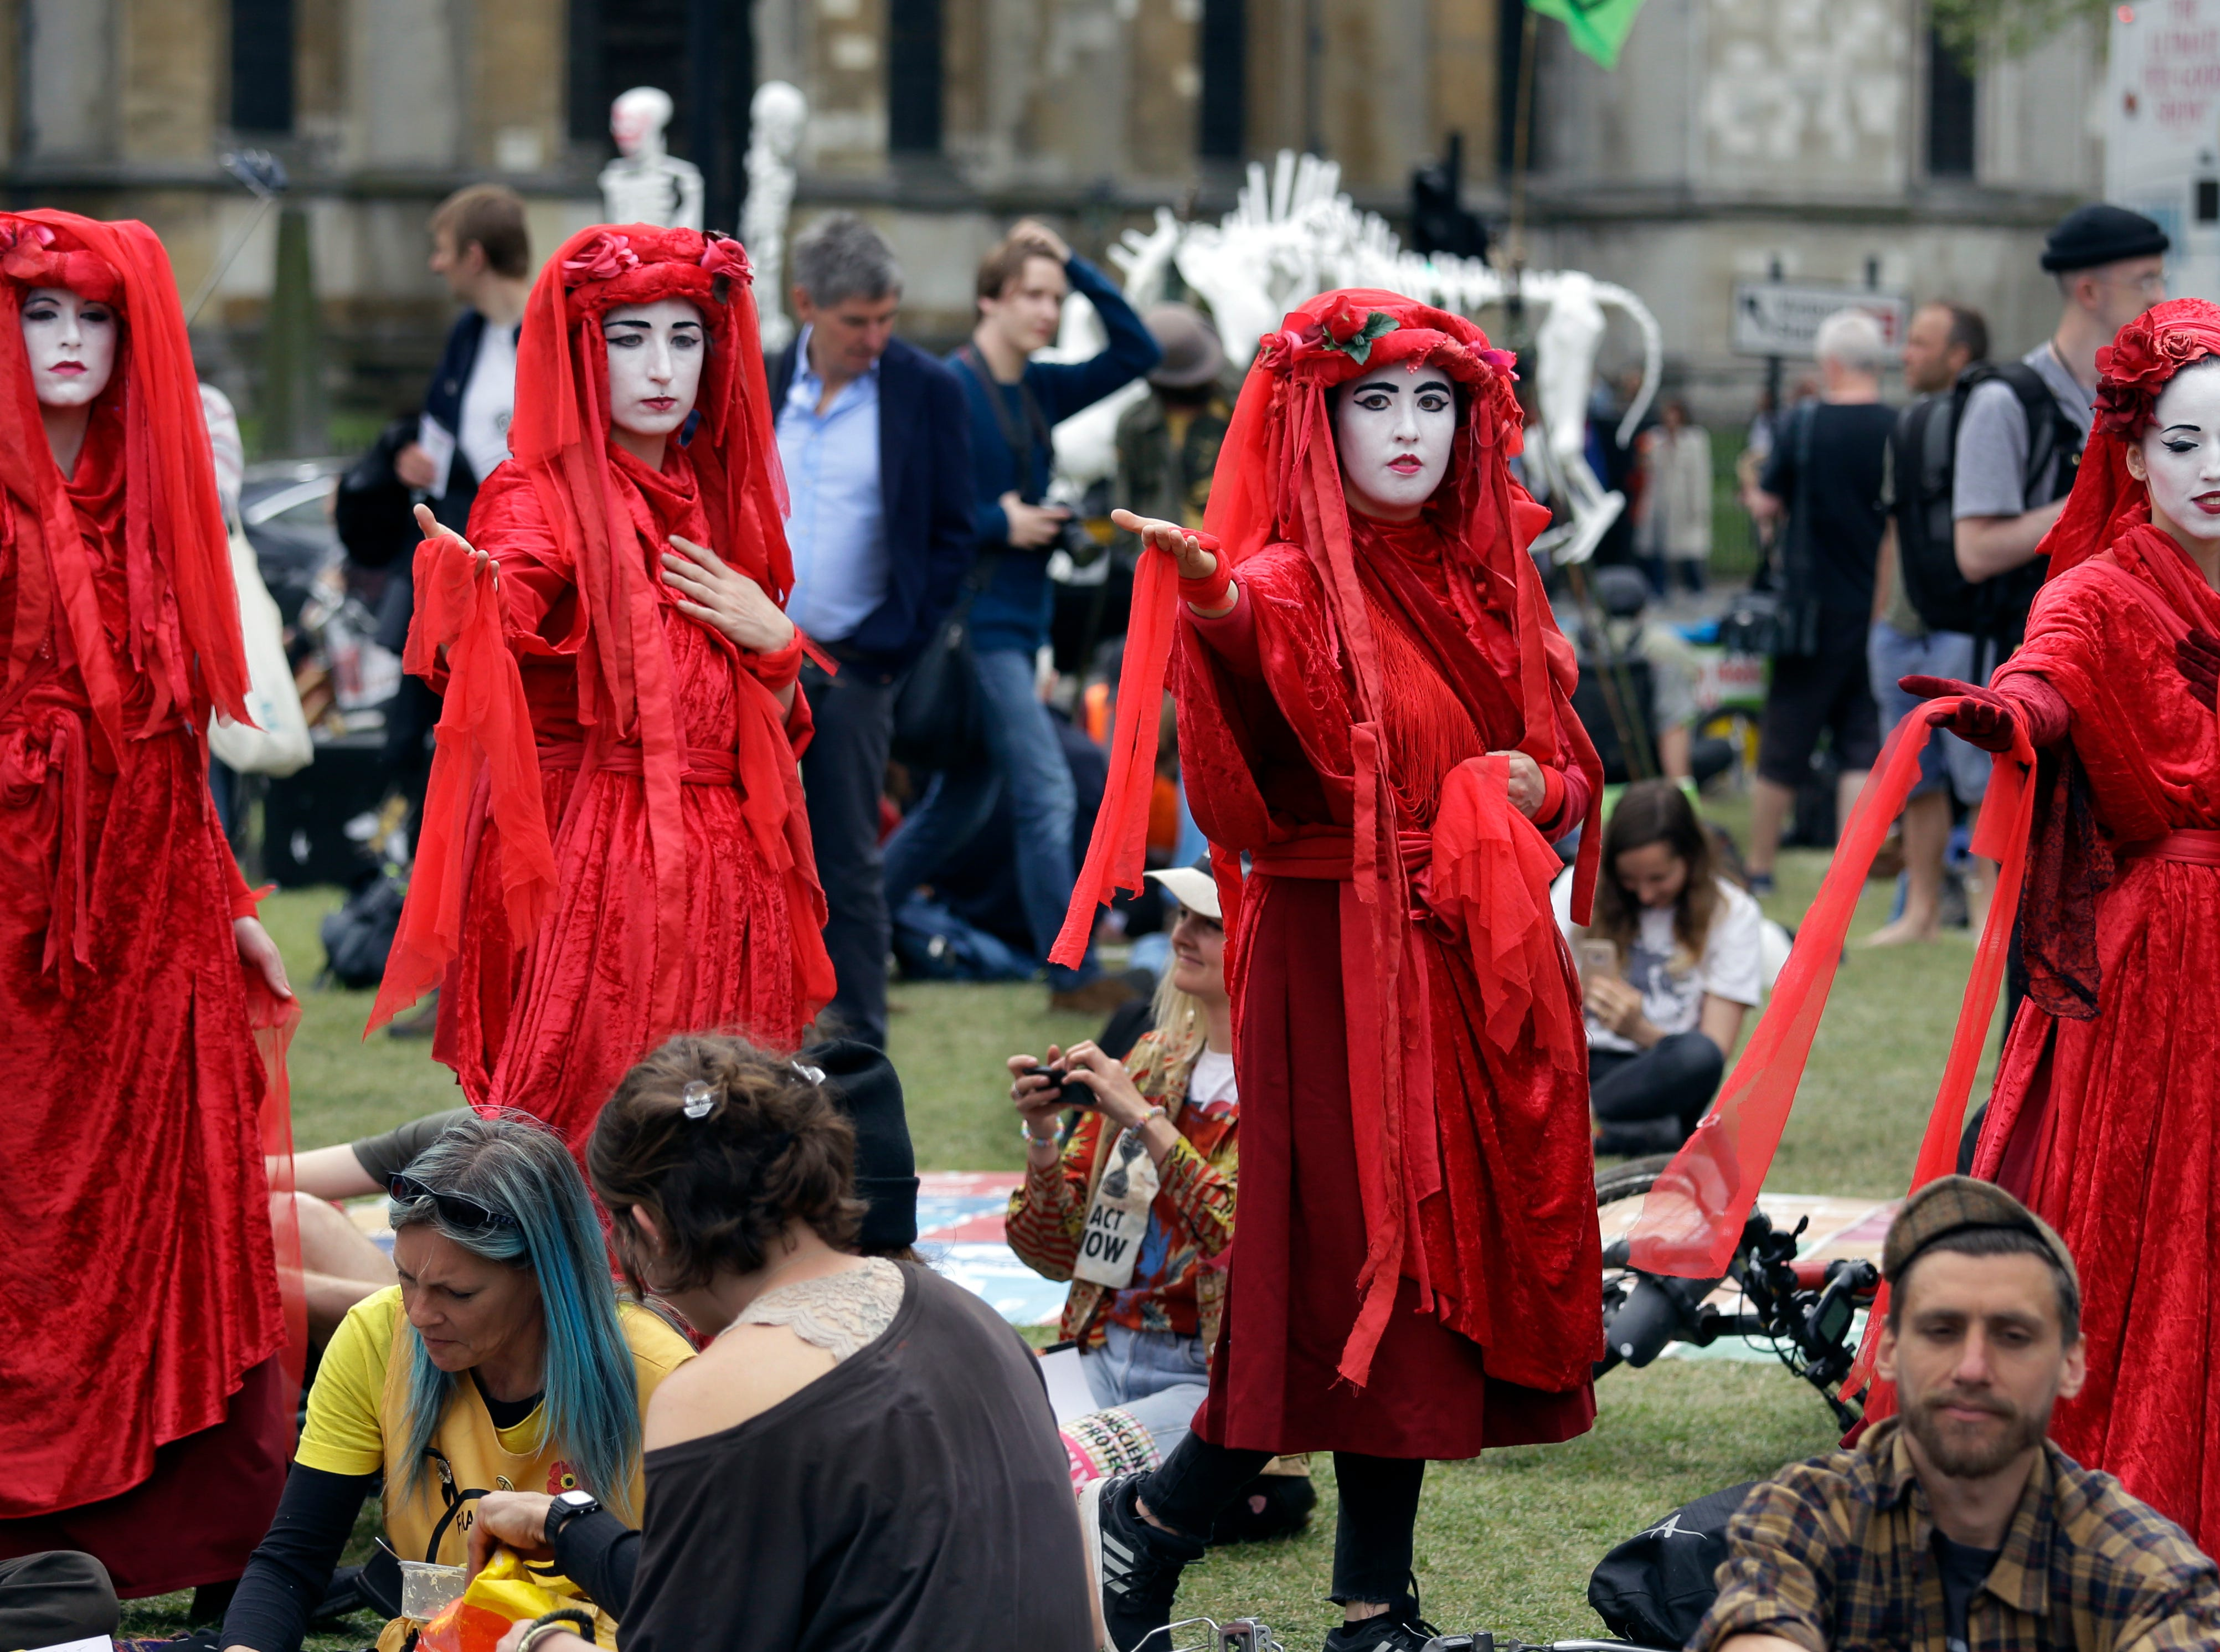 Members of the so-called 'Red Brigade' attend a climate protest in Parliament Square, in London, Tuesday April 23, 2019. The non-violent protest group, Extinction Rebellion, is seeking negotiations with the government on its demand to make slowing climate change a top priority.